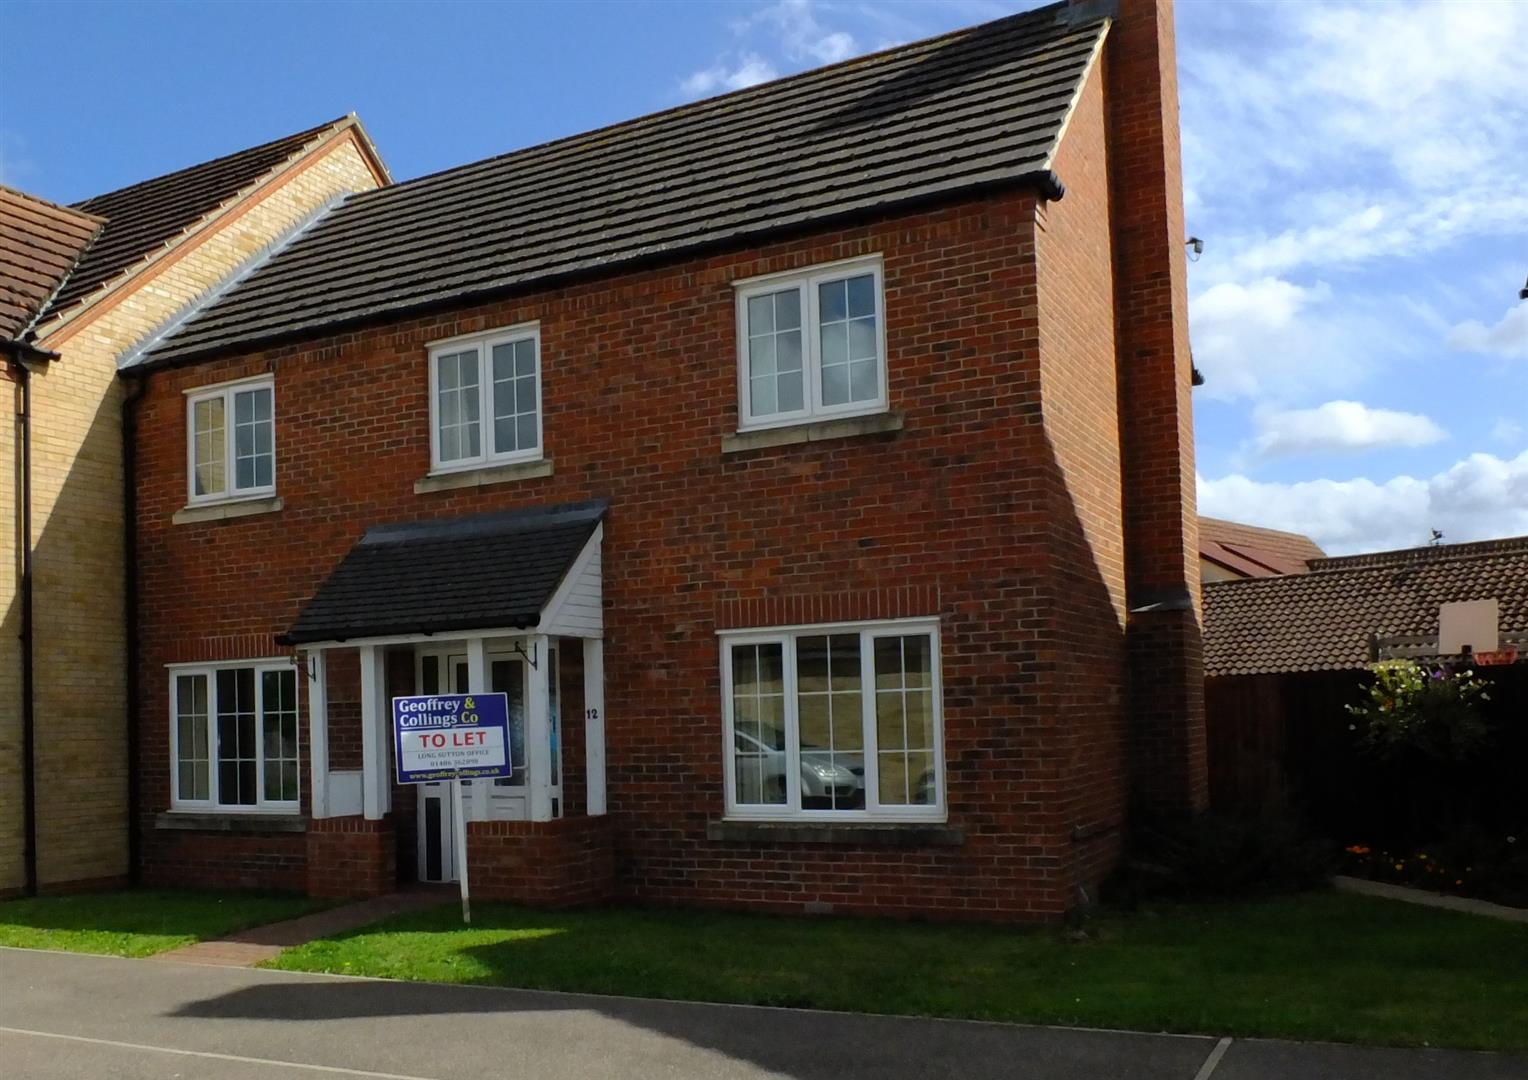 4 bed semi-detached house to rent in Sutton Bridge Spalding, PE12 9SW  - Property Image 1